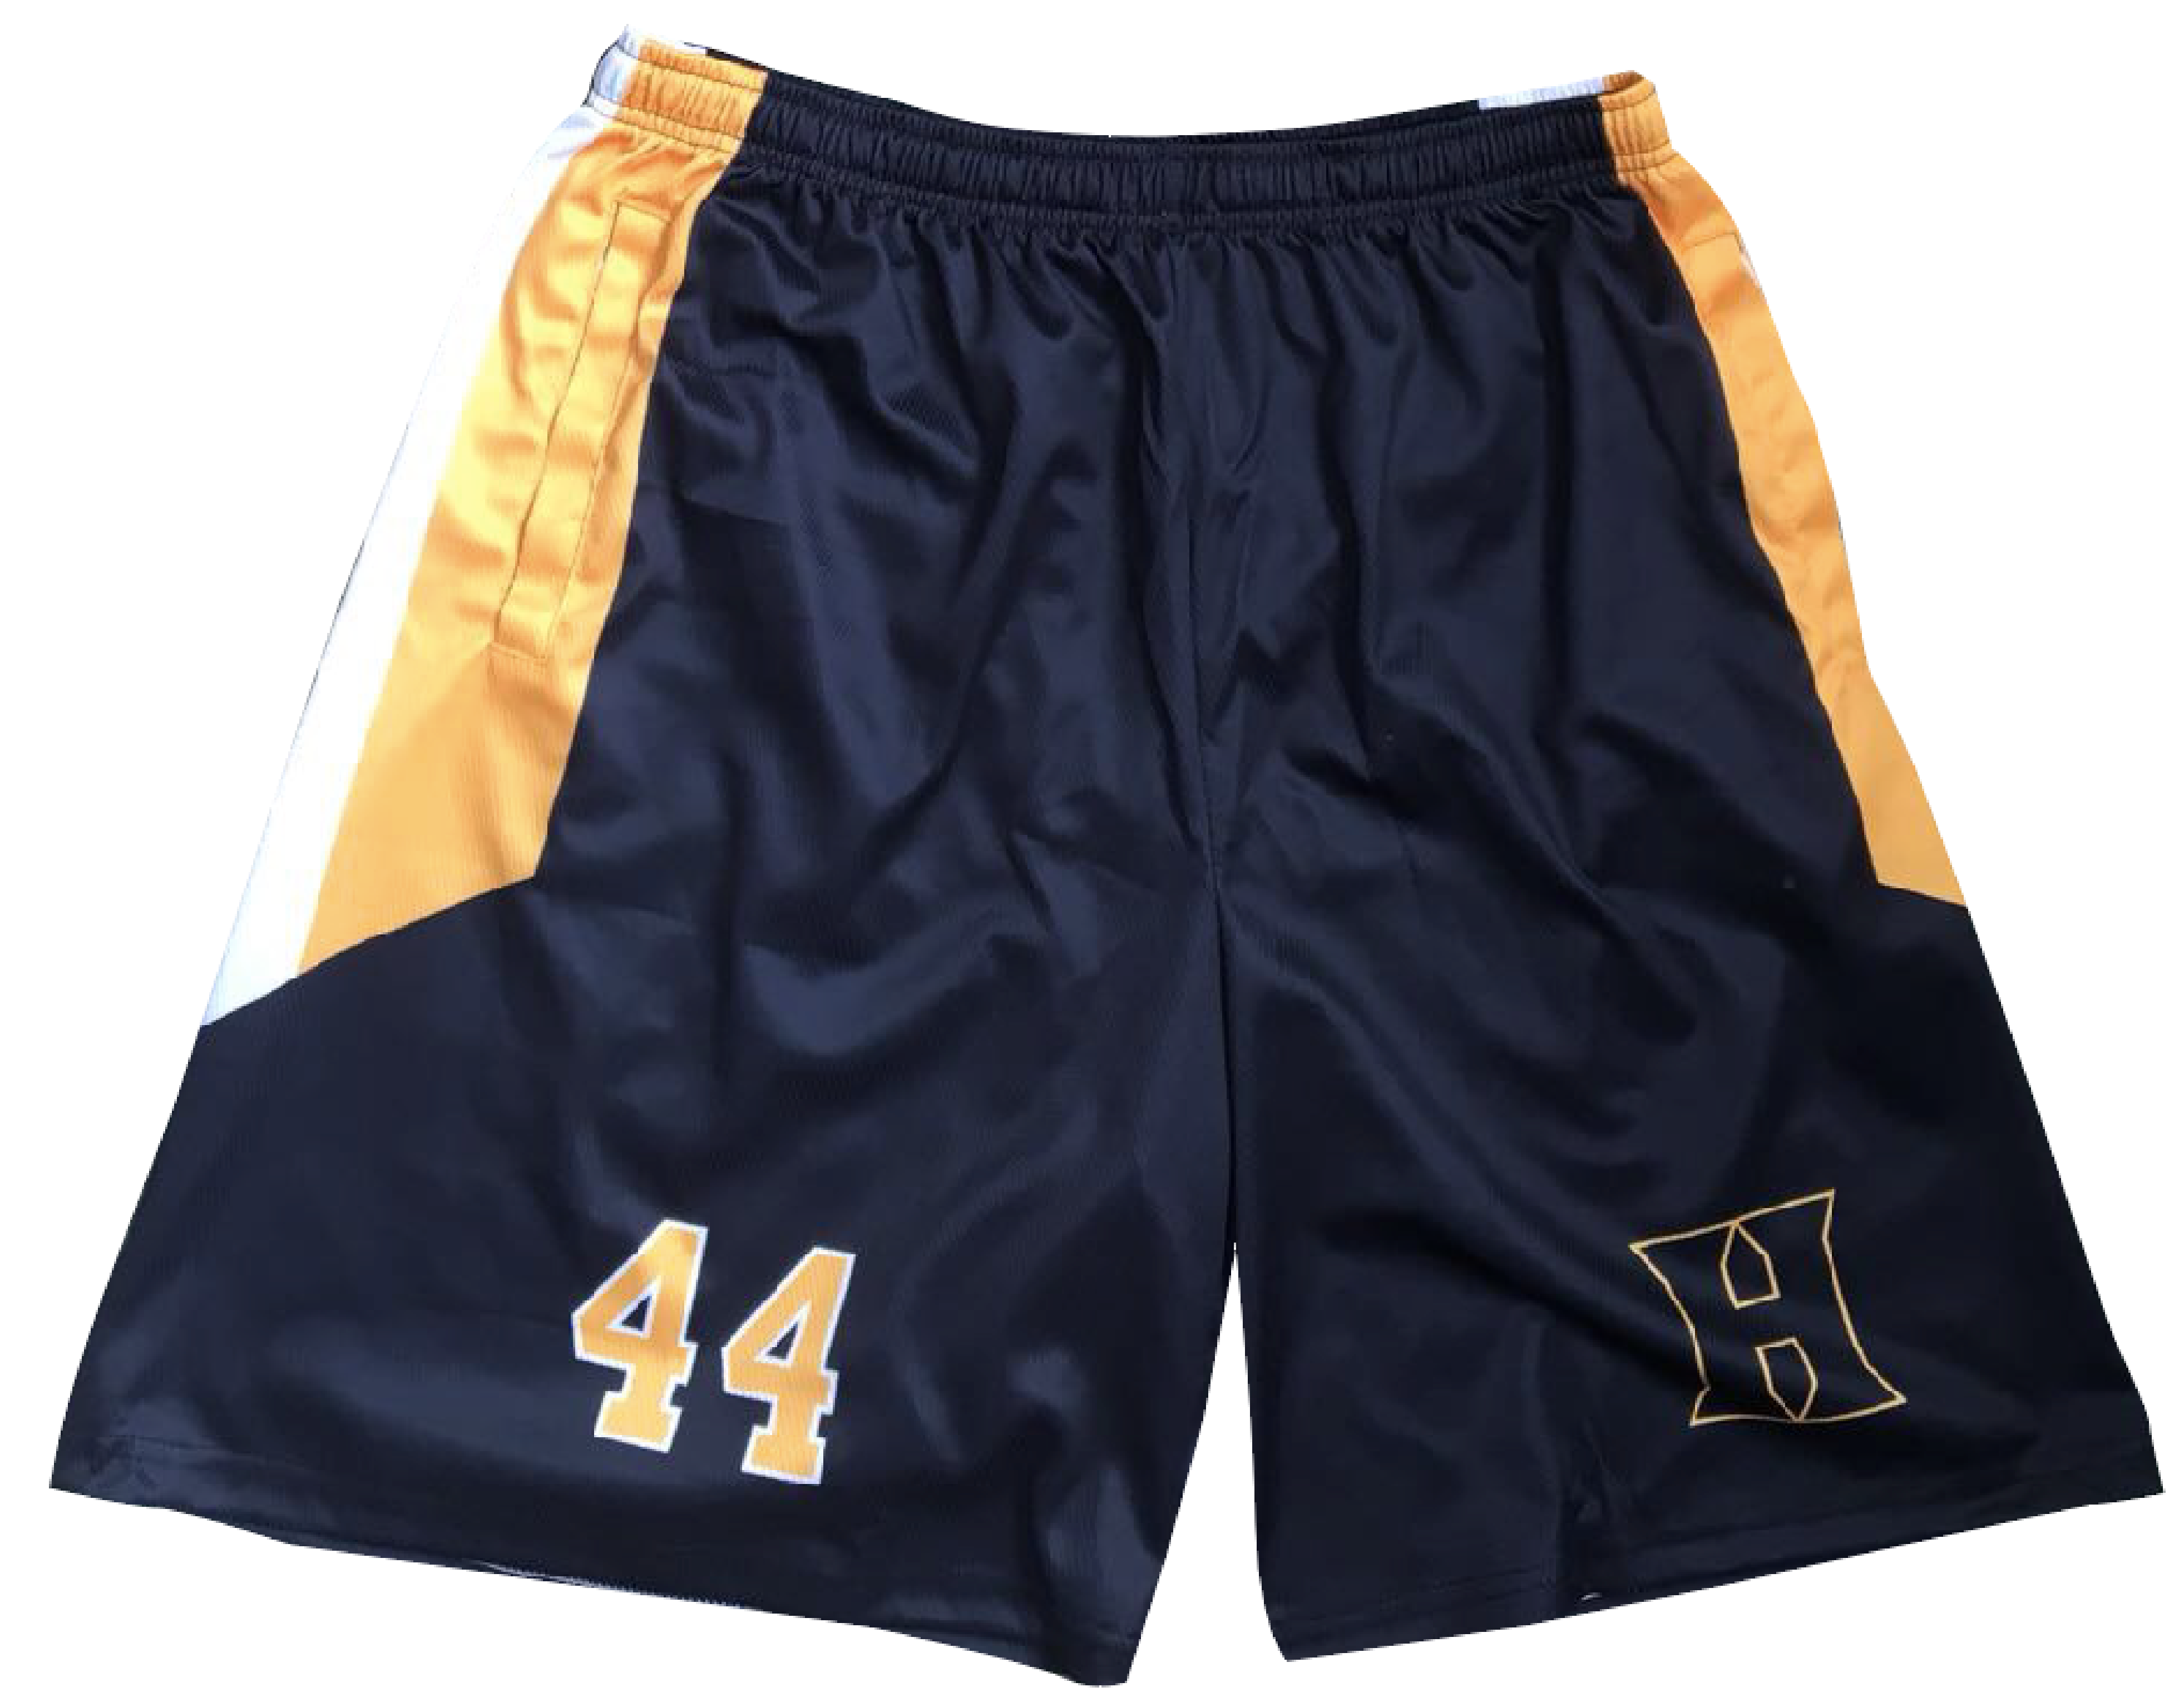 HIllcroft Lacrosse Black Shorts